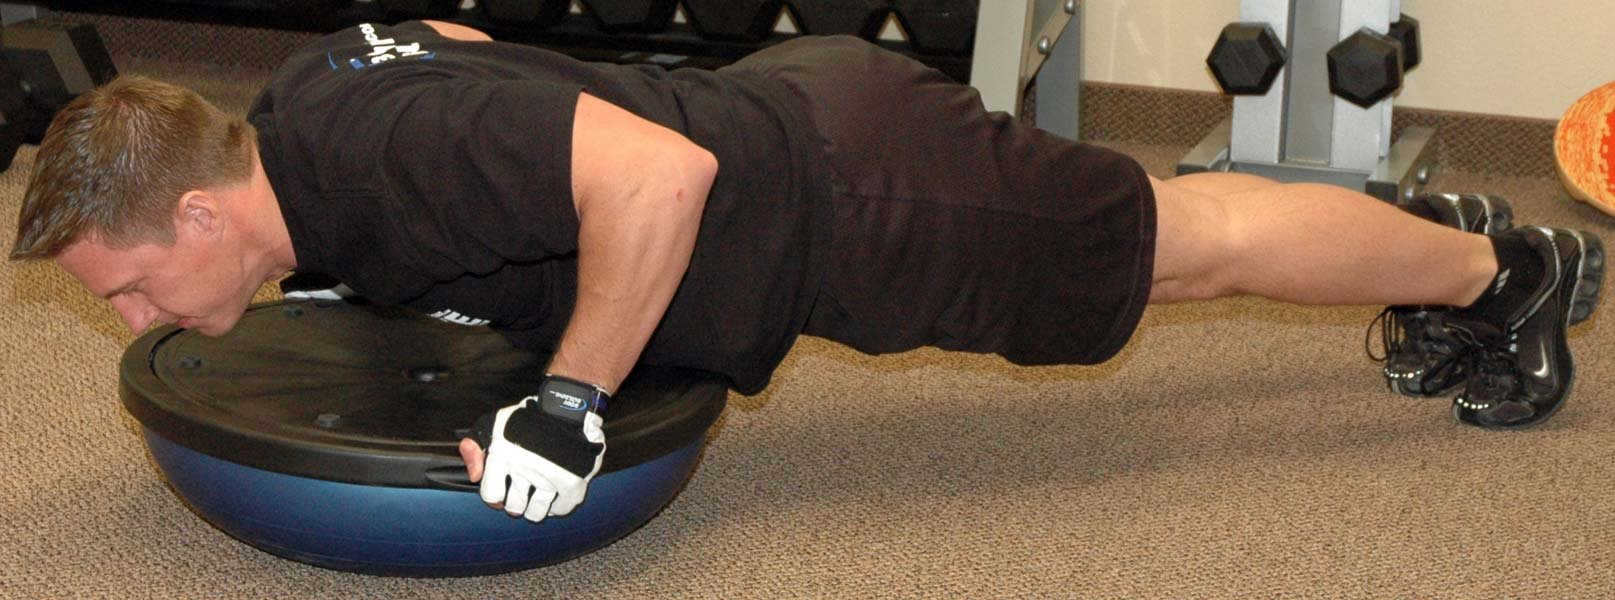 What Is The Best Bosu Ball Workout?